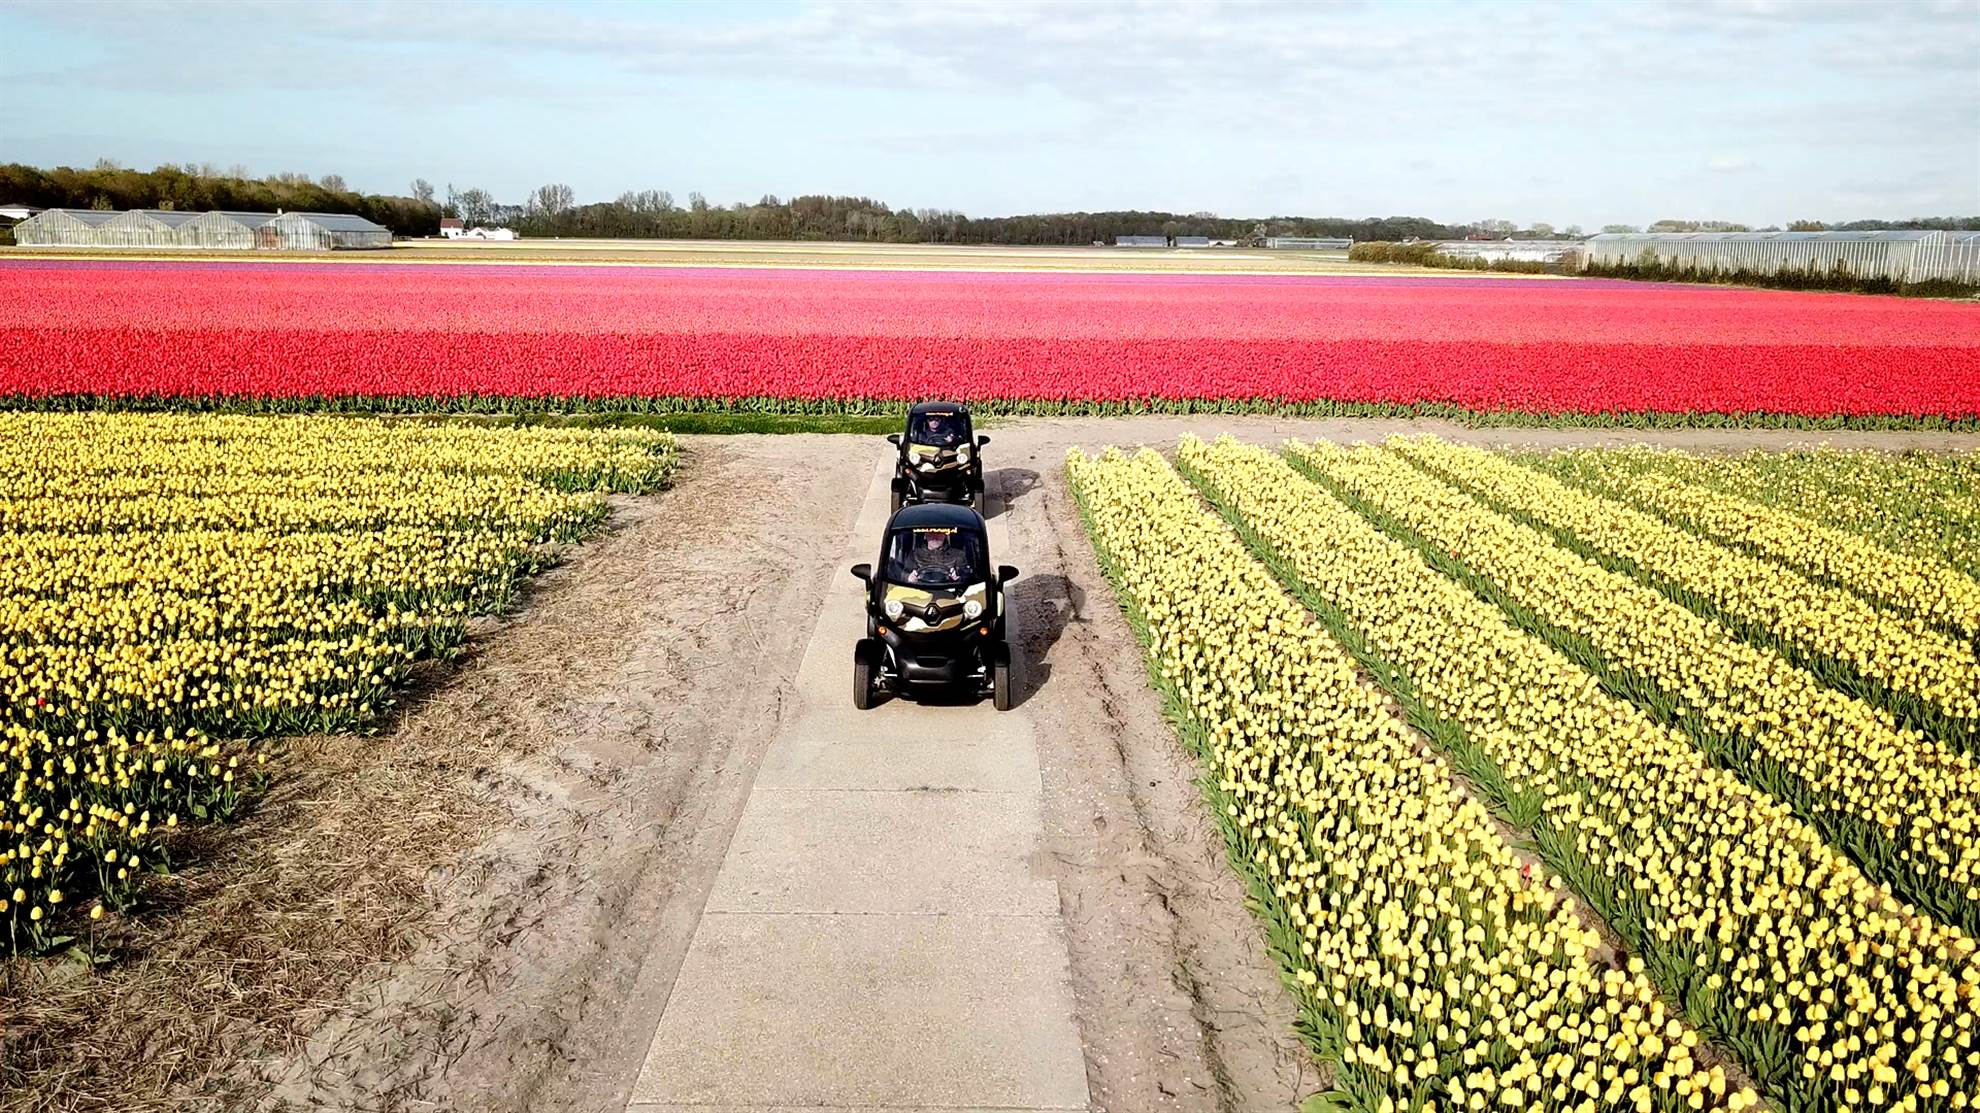 Flowerfield Experience with Electric Vehicle - GPS and Audioguide (Active and Bookable)